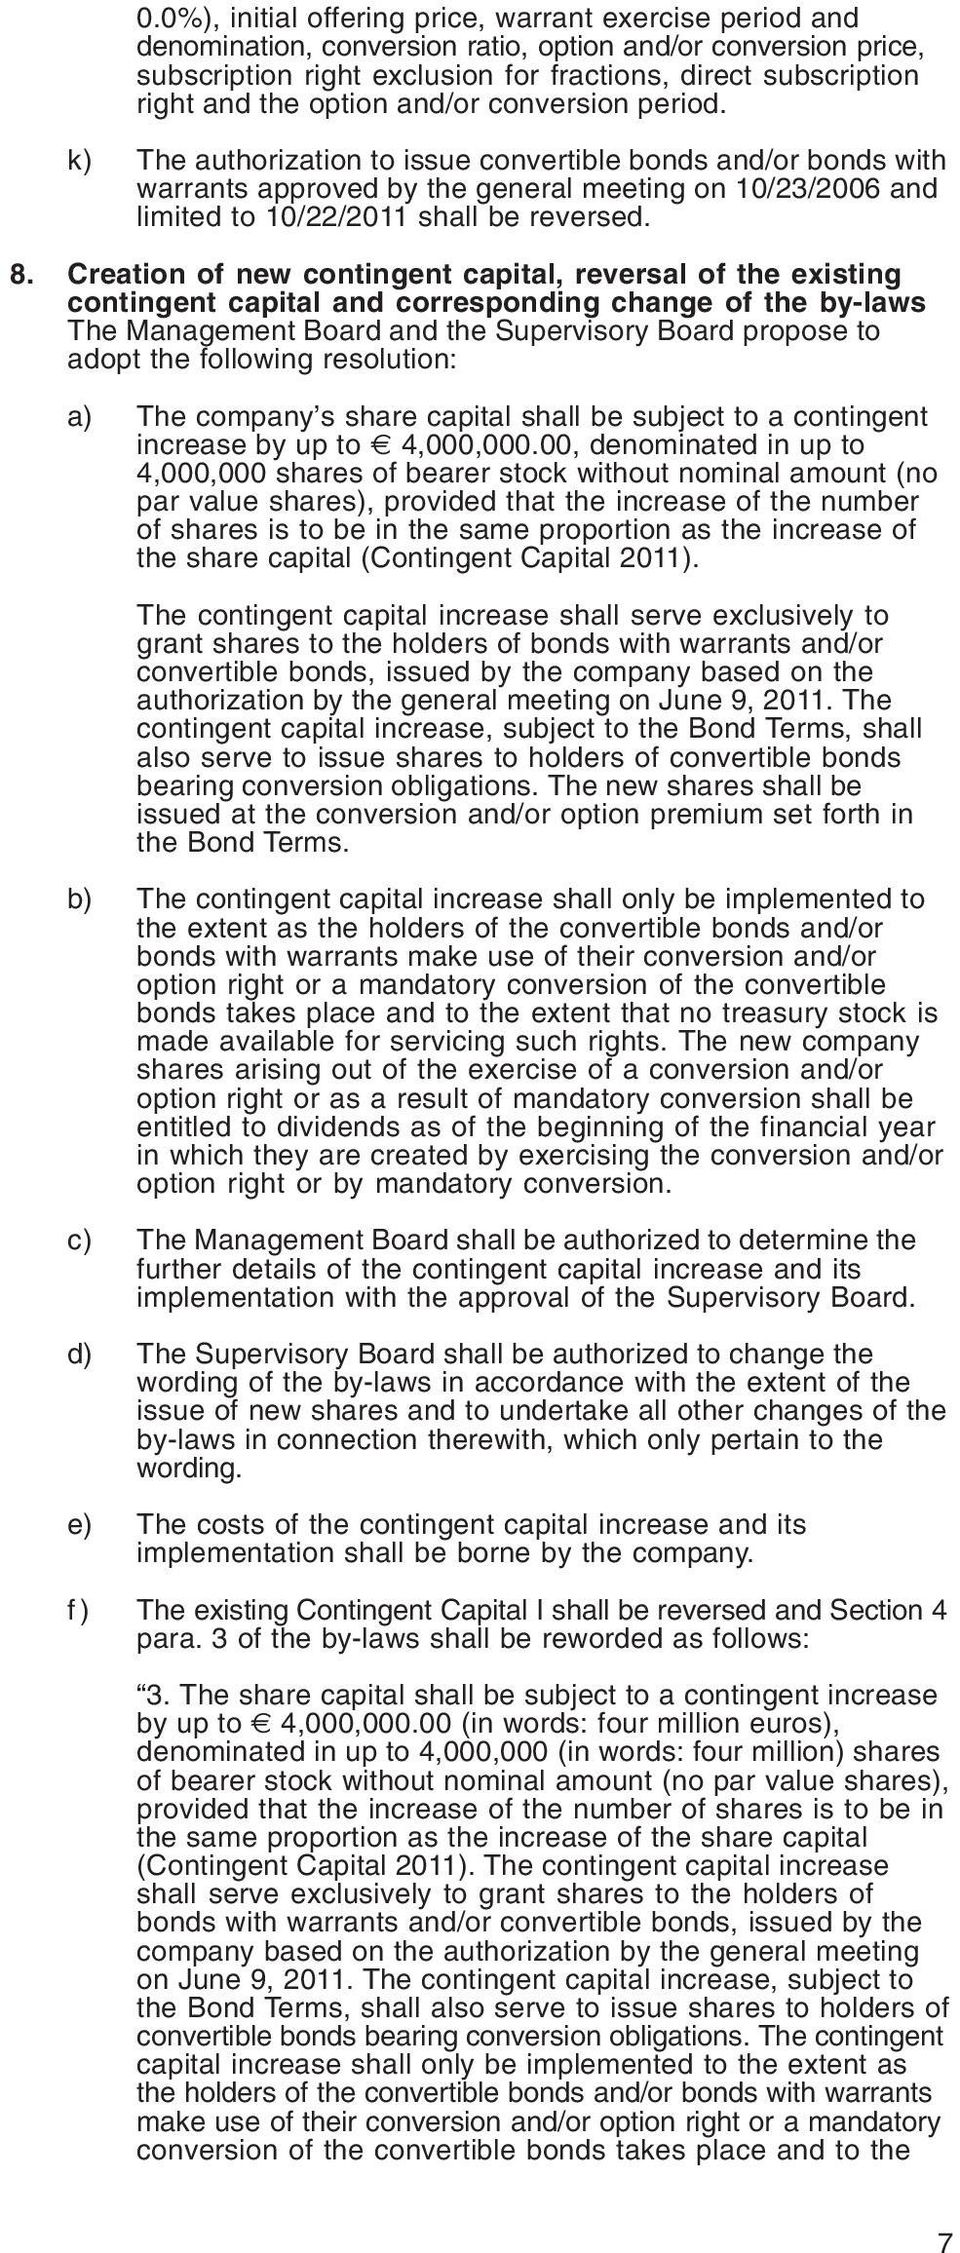 k) The authorization to issue convertible bonds and/or bonds with warrants approved by the general meeting on 10/23/2006 and limited to 10/22/2011 shall be reversed. 8.